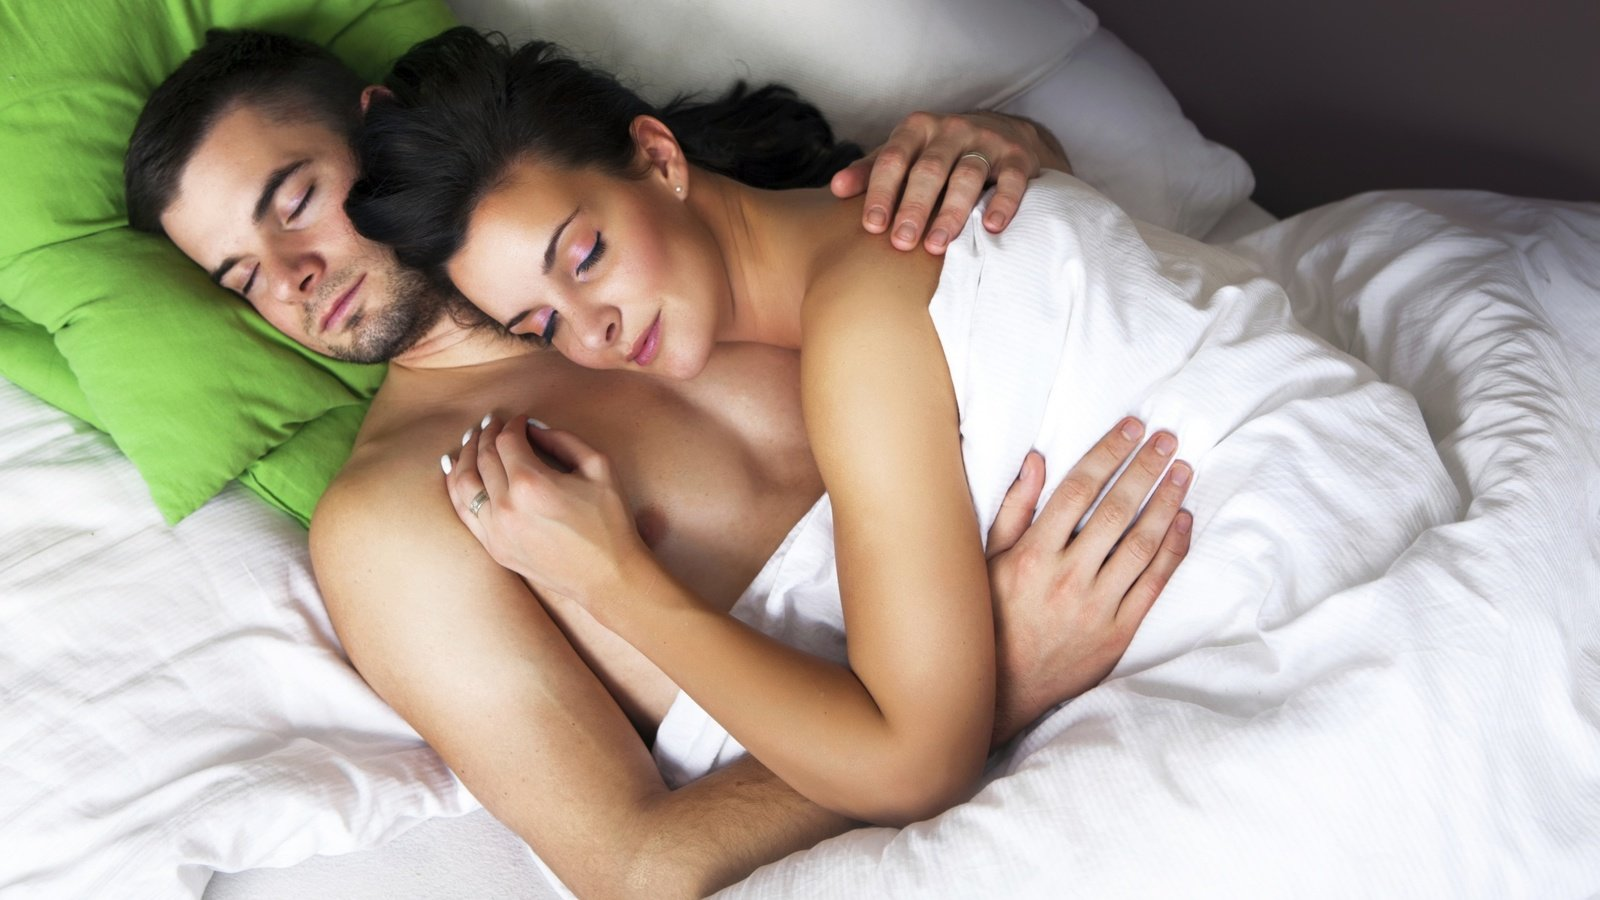 how to get a girl in bed without dating How to get a girlfriend by tony rehagen from the webmd archives  get real once you start dating, it's easy to start thinking that the world revolves around this girl but be careful not to put too much pressure on her or the relationship  that's a great reputation to have if you want to date other girls in the same school webmd.